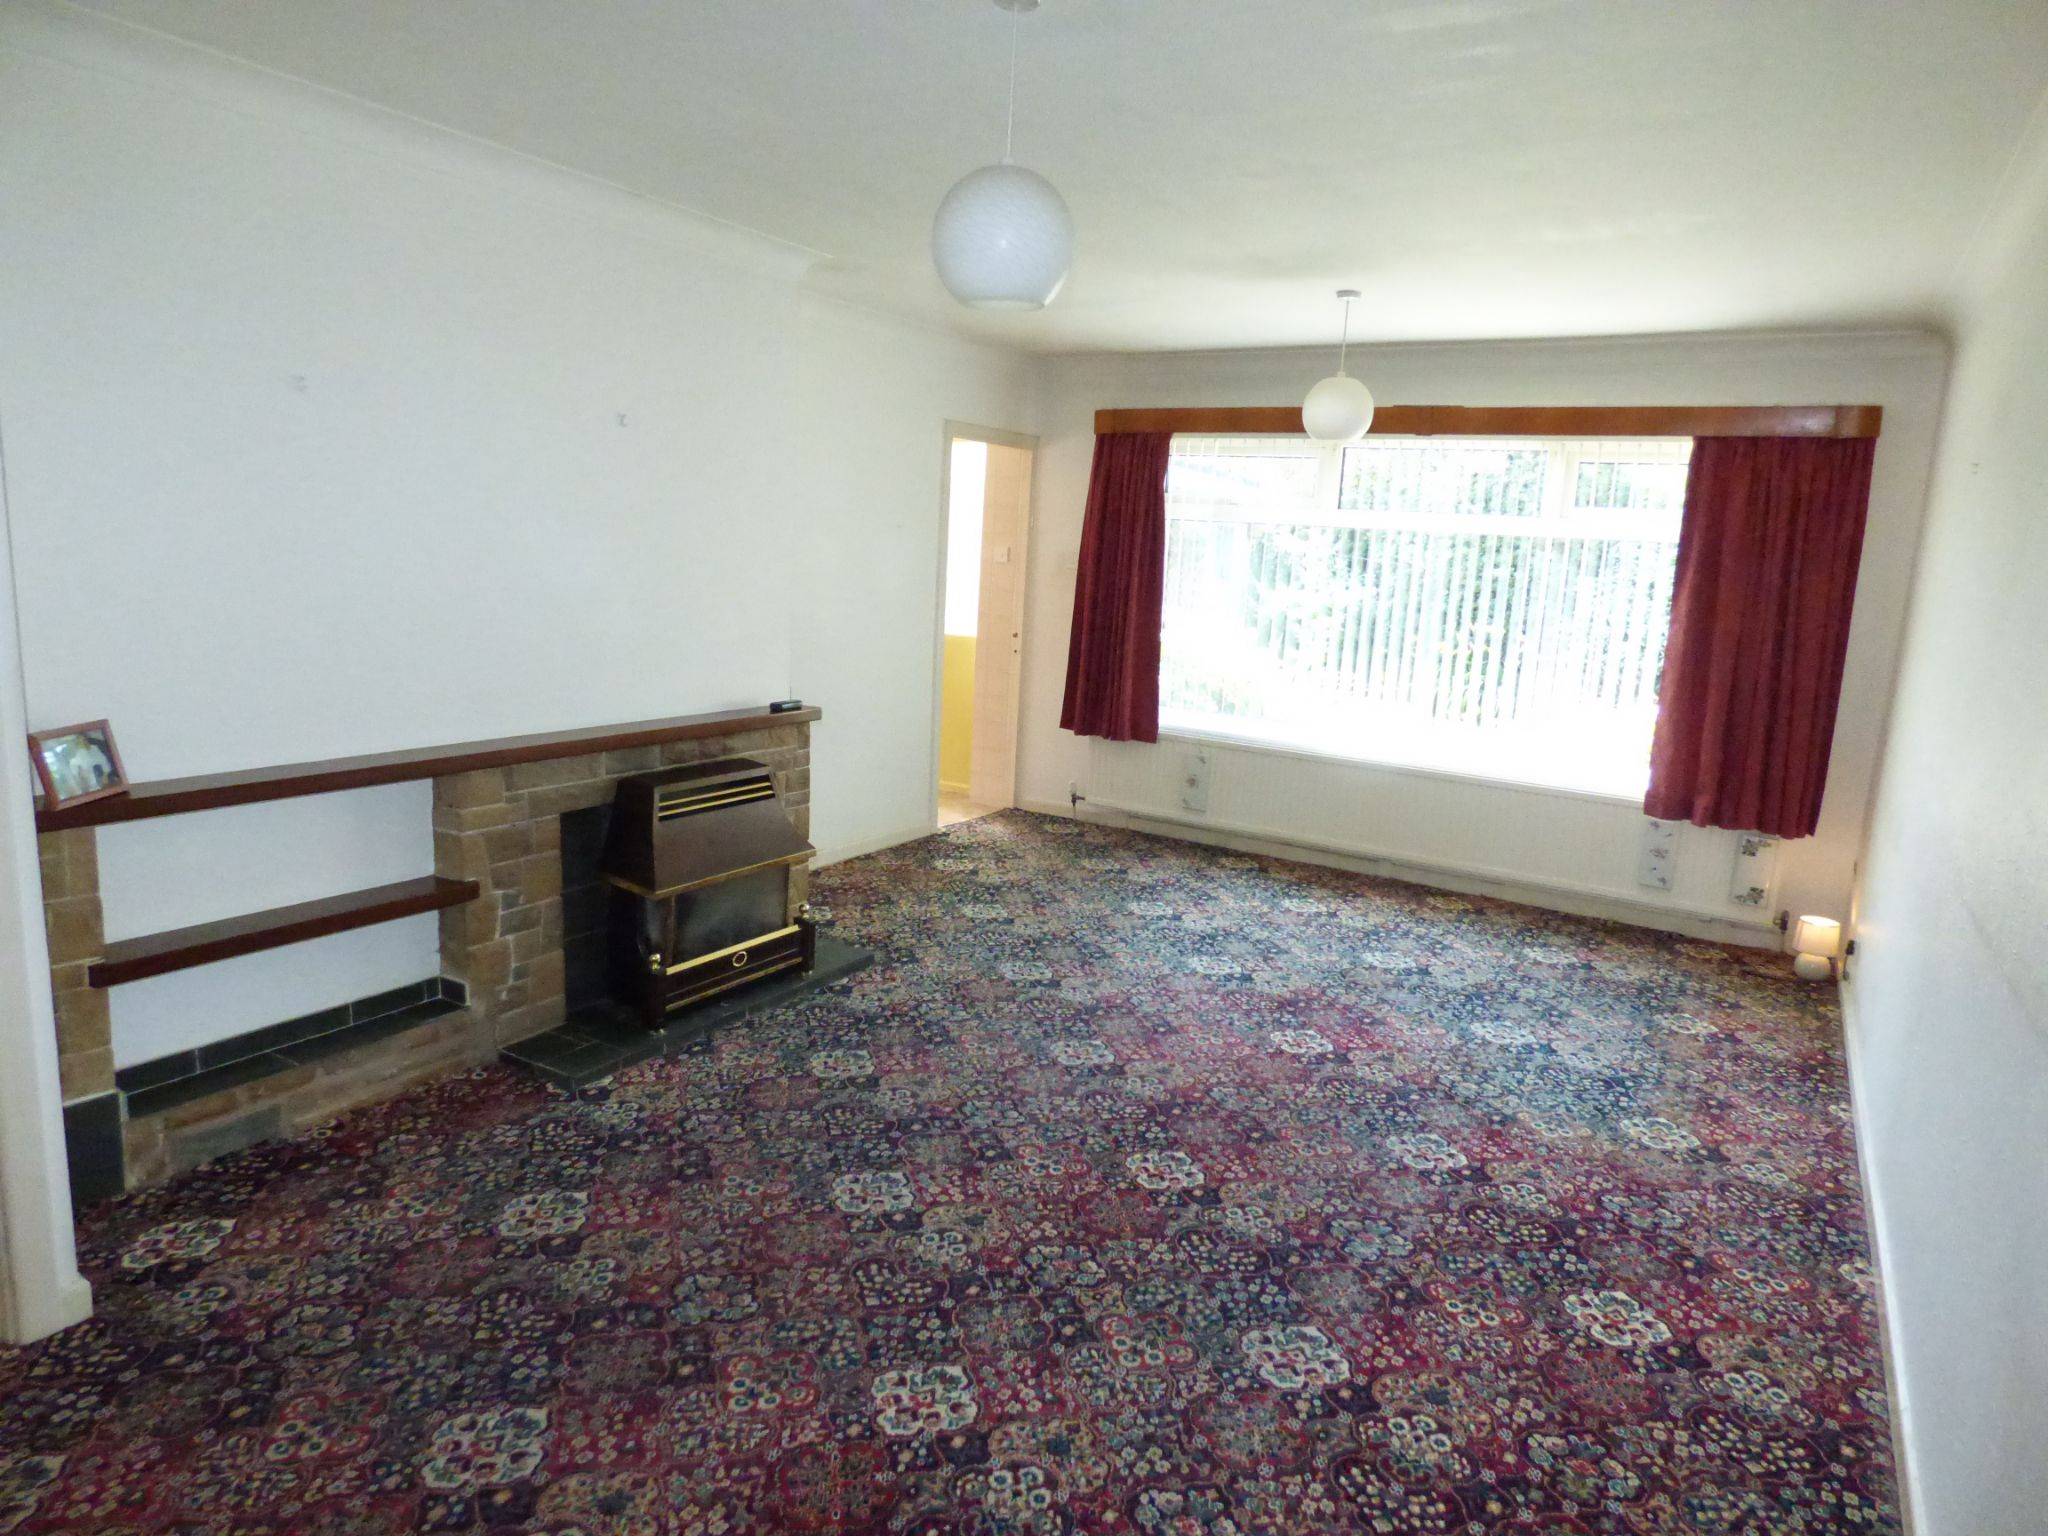 3 Bedroom Semi-detached Bungalow For Sale - Photograph 5